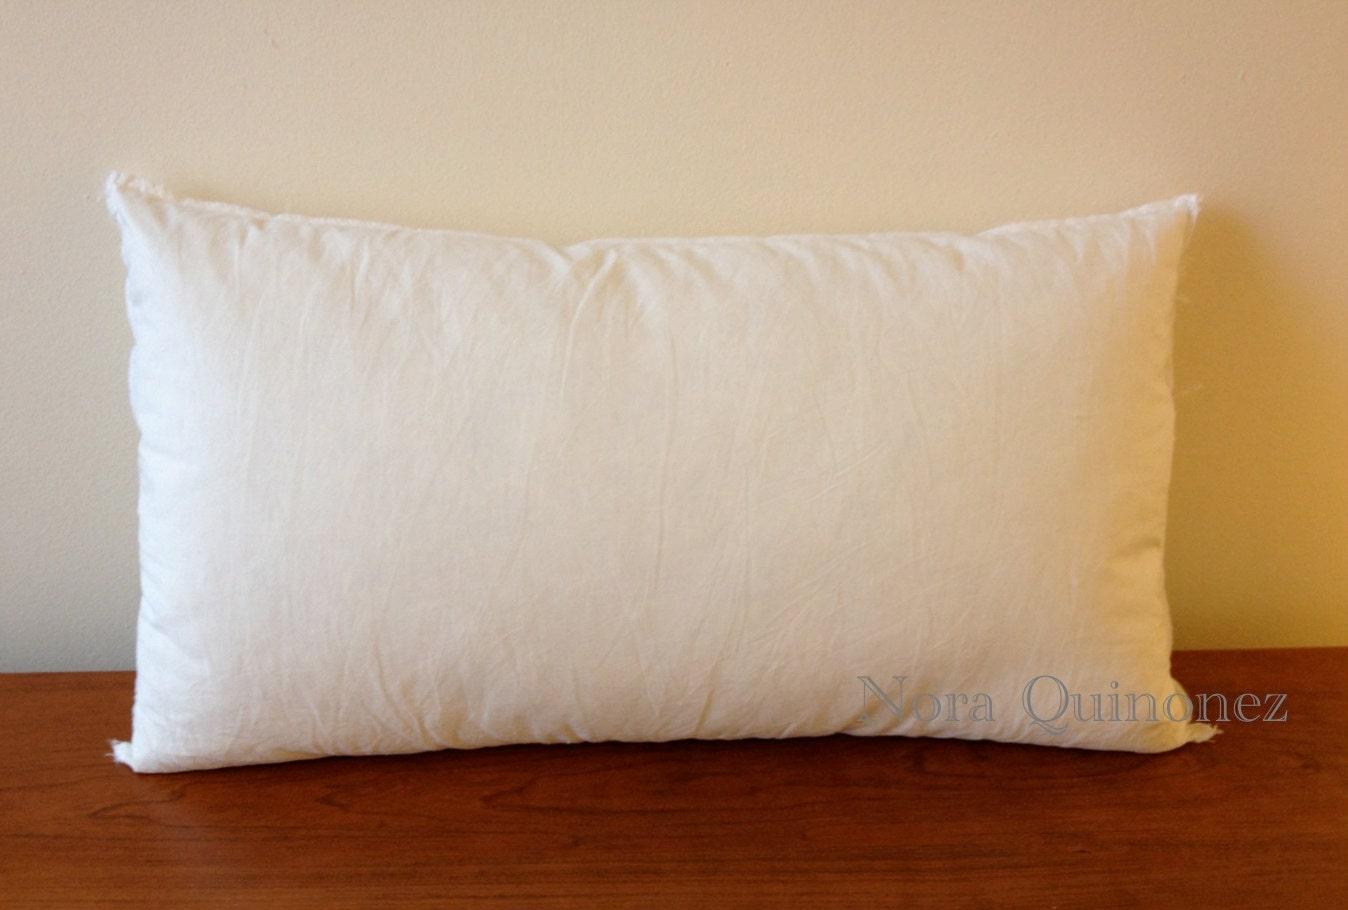 Pillow Inserts For Throw Pillows : 10x20 TO 12x24 Pillow Inserts Form Made For Decorative Throw